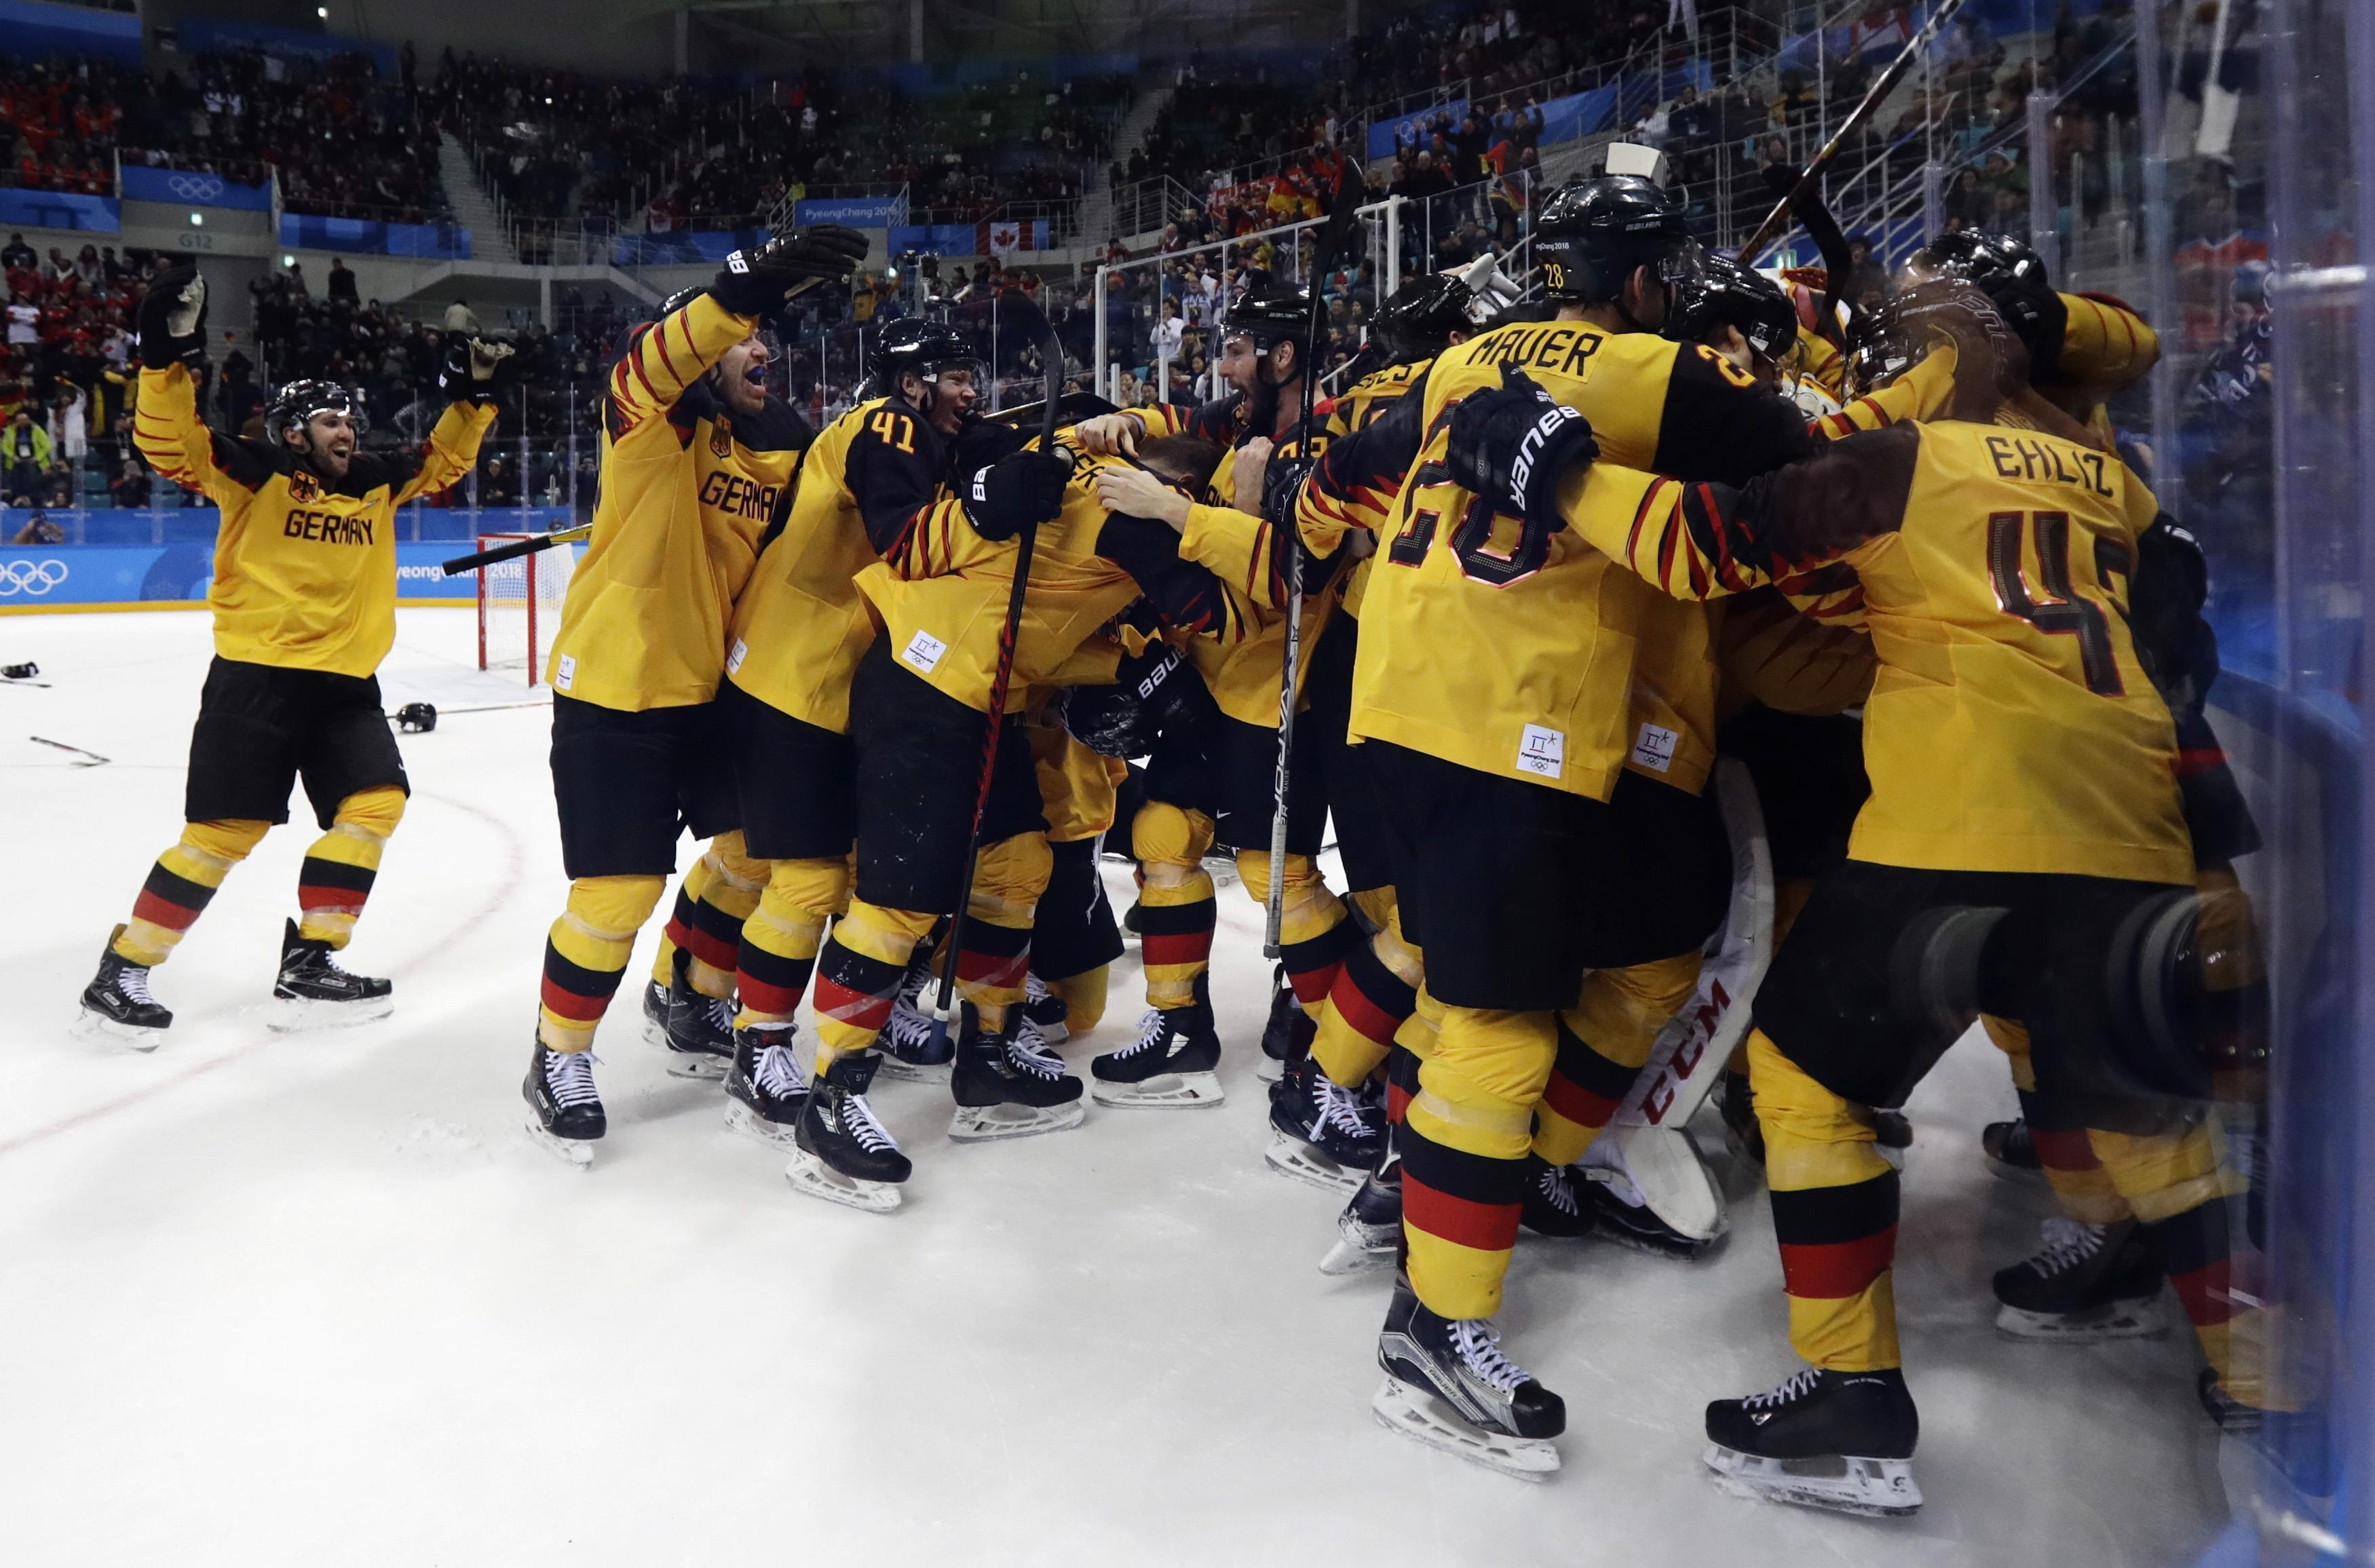 Germany have been the surprise package of the Winter Olympics